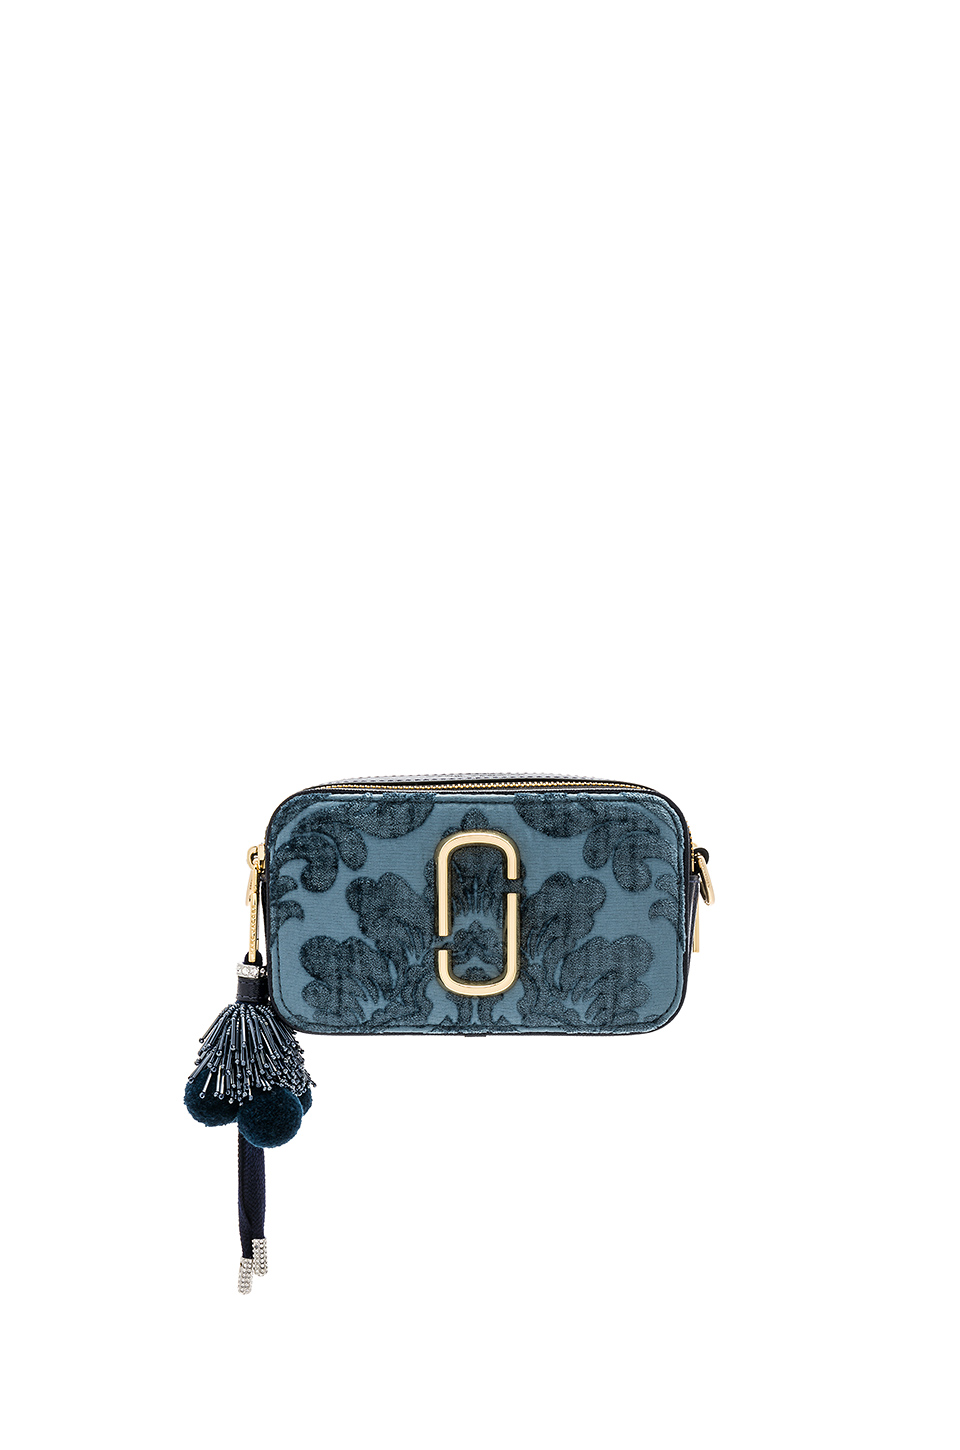 Marc Jacobs Snapshot Damask Camera Bag in Blue